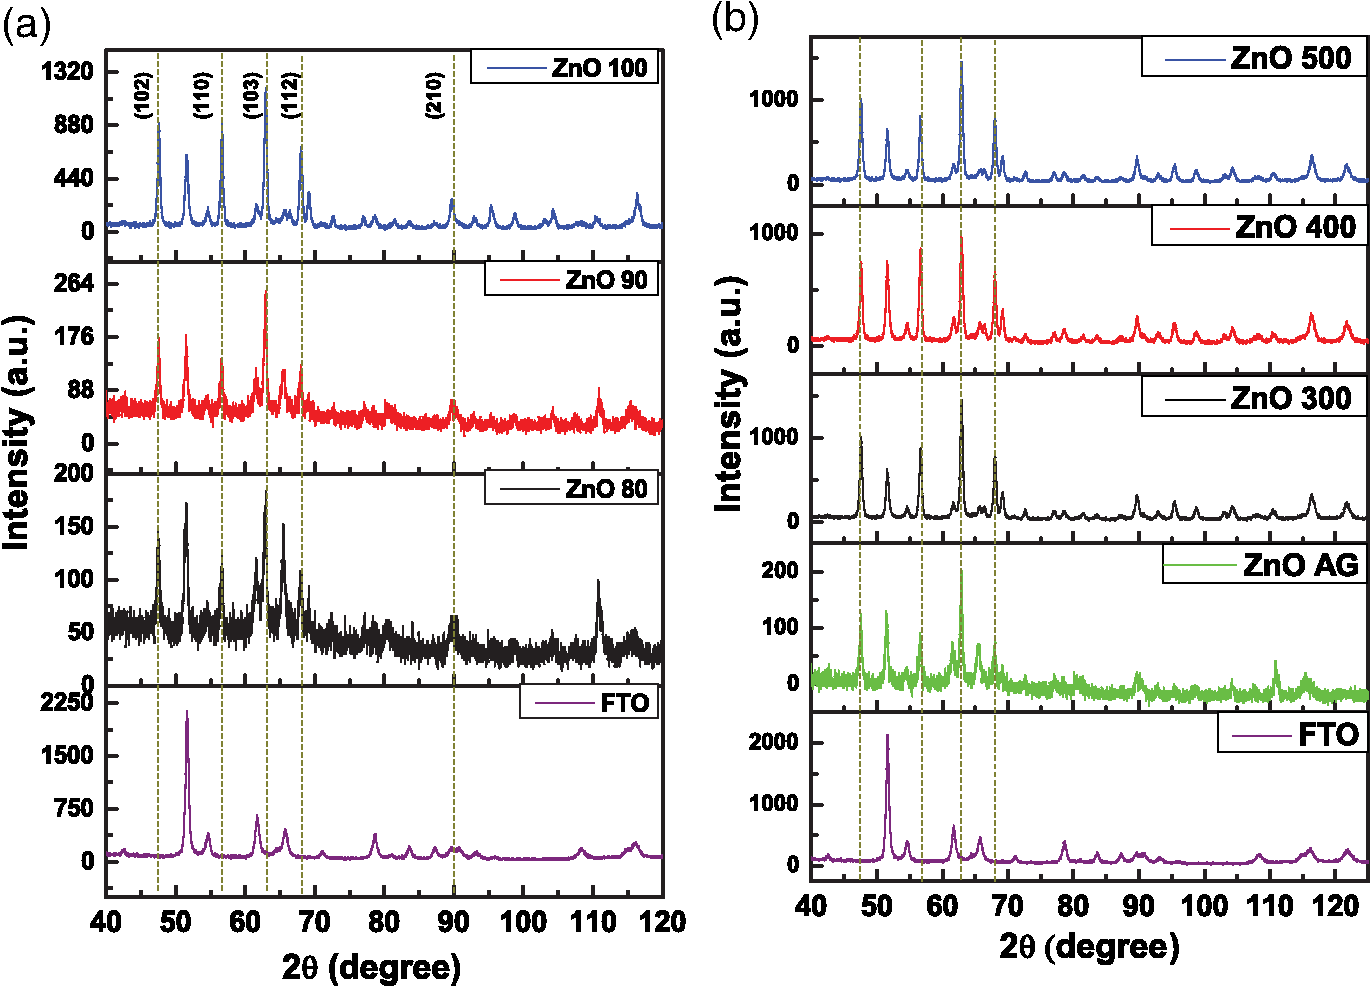 Optimization Of Cds Cdse Quantum Dots Solar Cells Based On Field Is In Line With The Nanorods Circuit Wired Parallel B X Ray Diffraction Patterns Zno Synthesized At 90c Without As Grownag And Thermal Treatment 300c 400c 500c